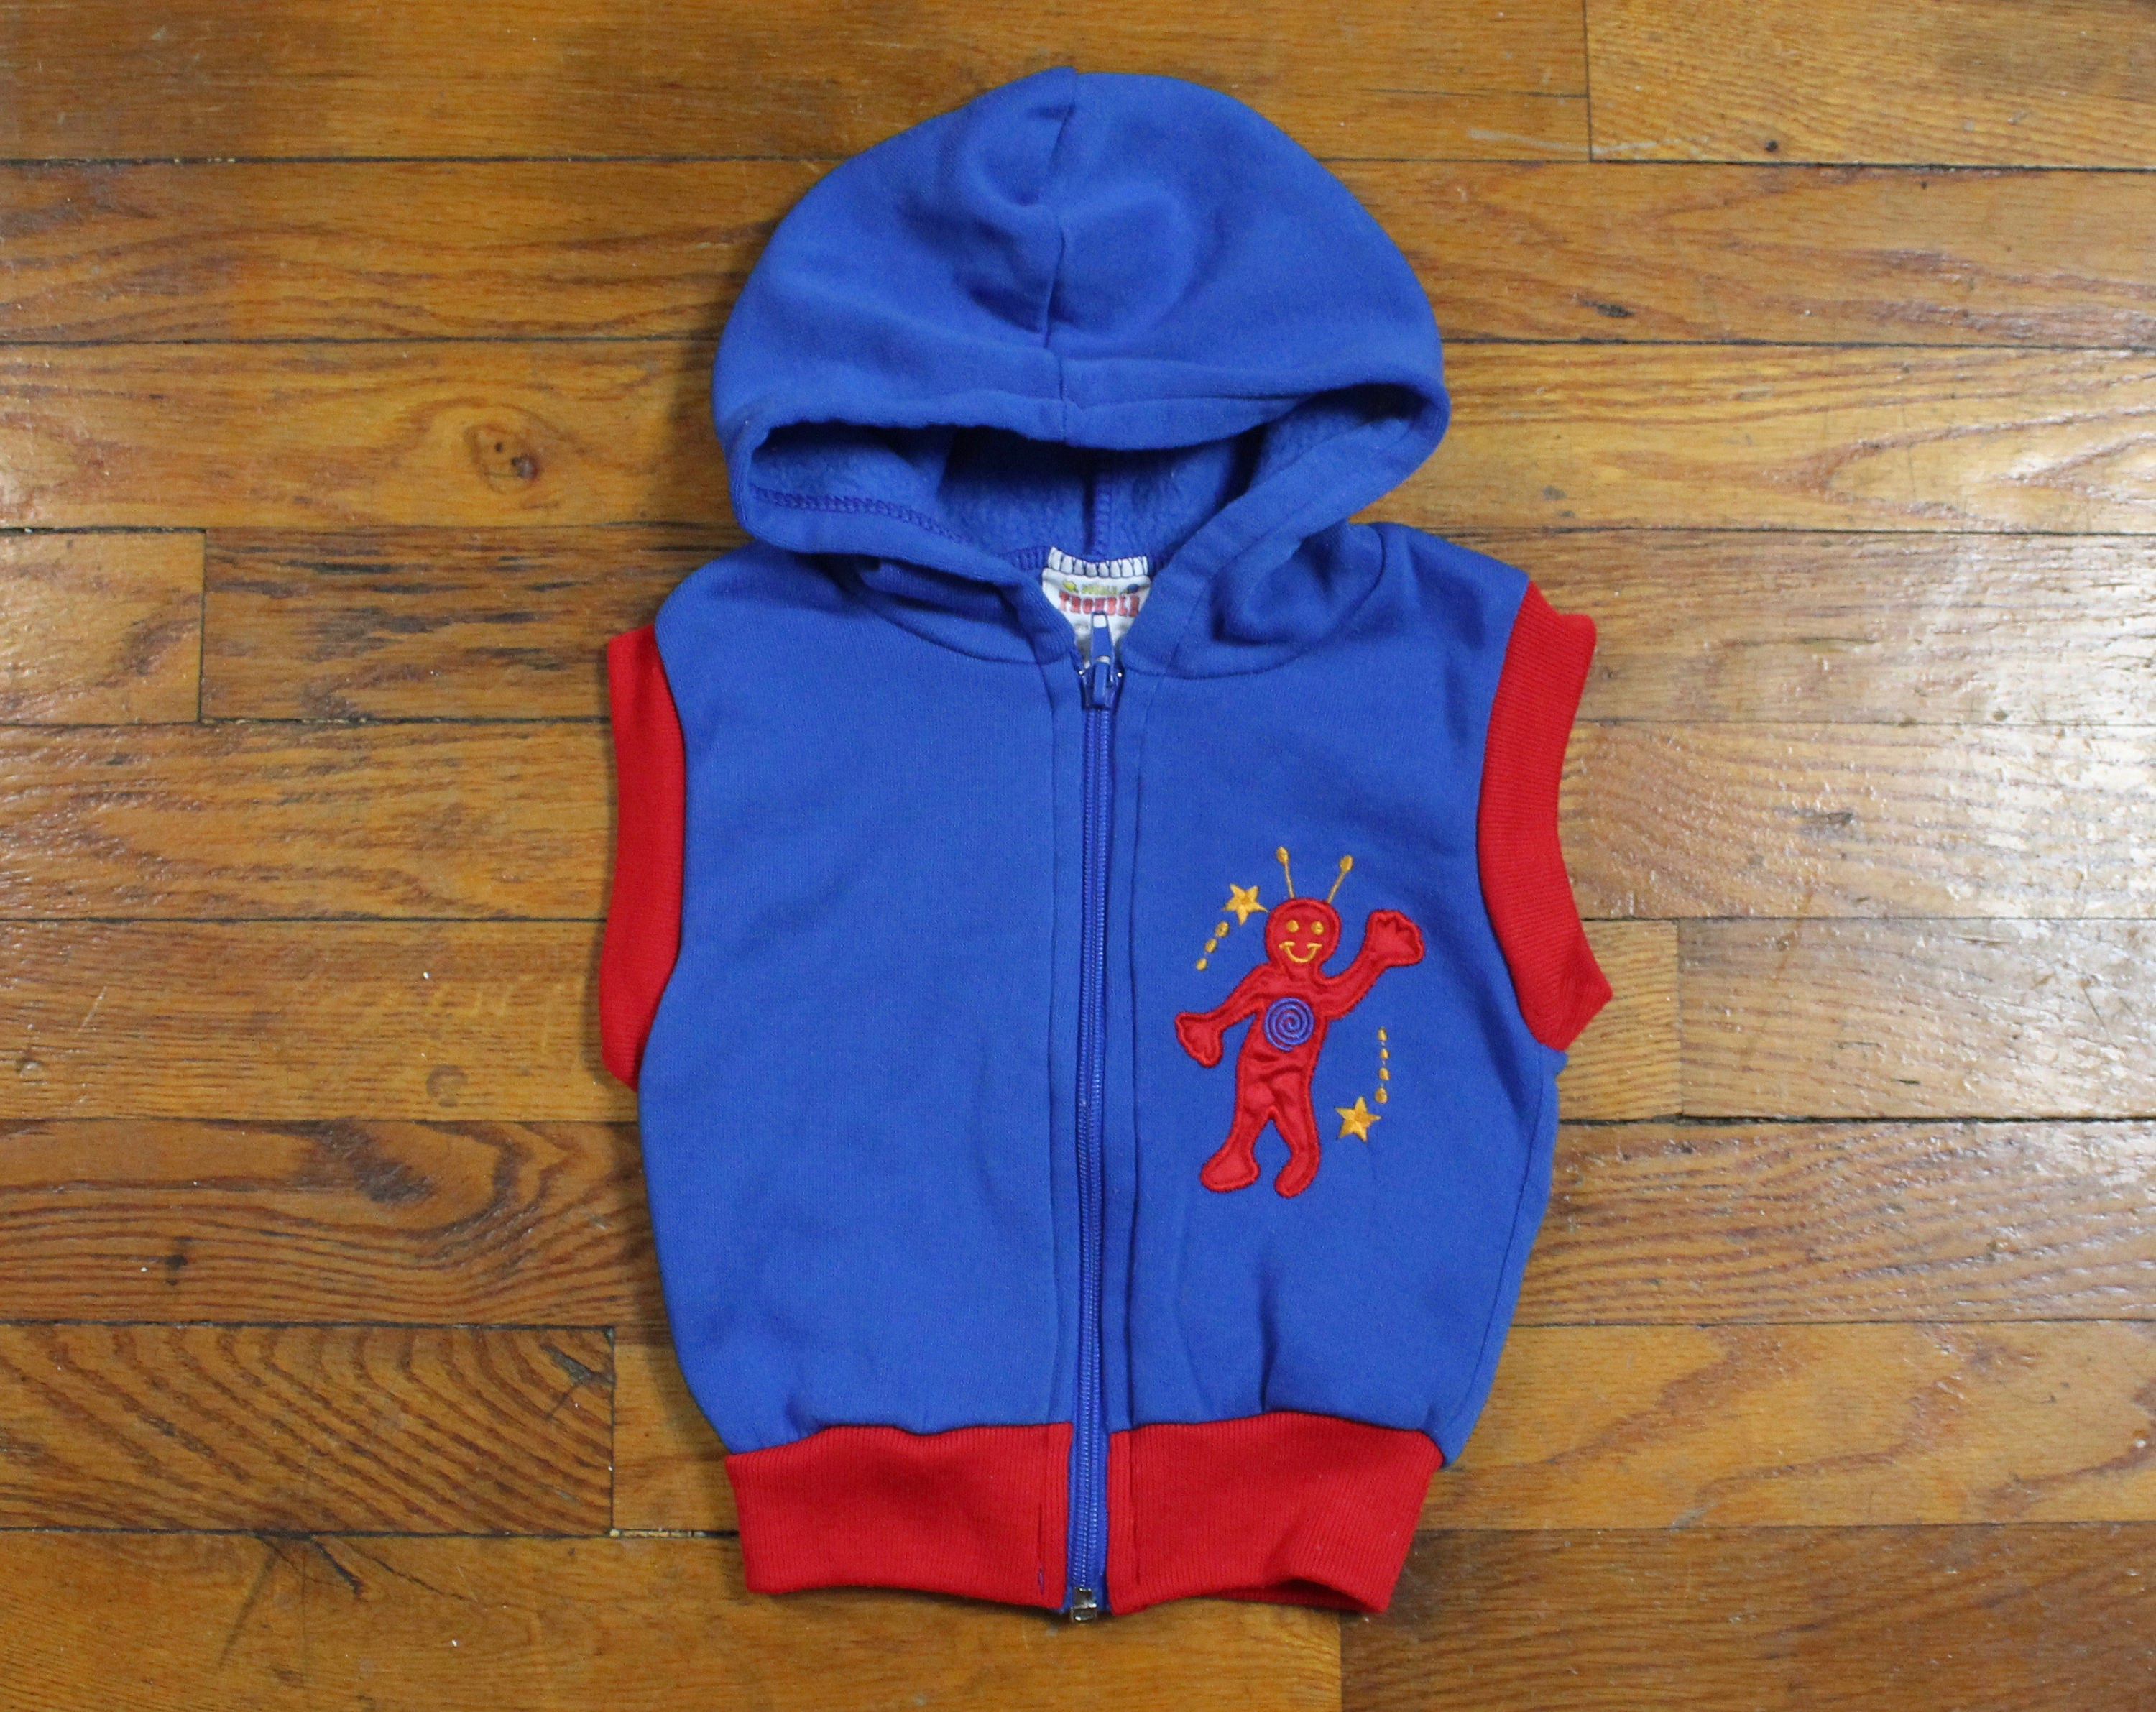 Vintage 1980s Baby Boy Vest Blue Red Alien Embroidered Robot